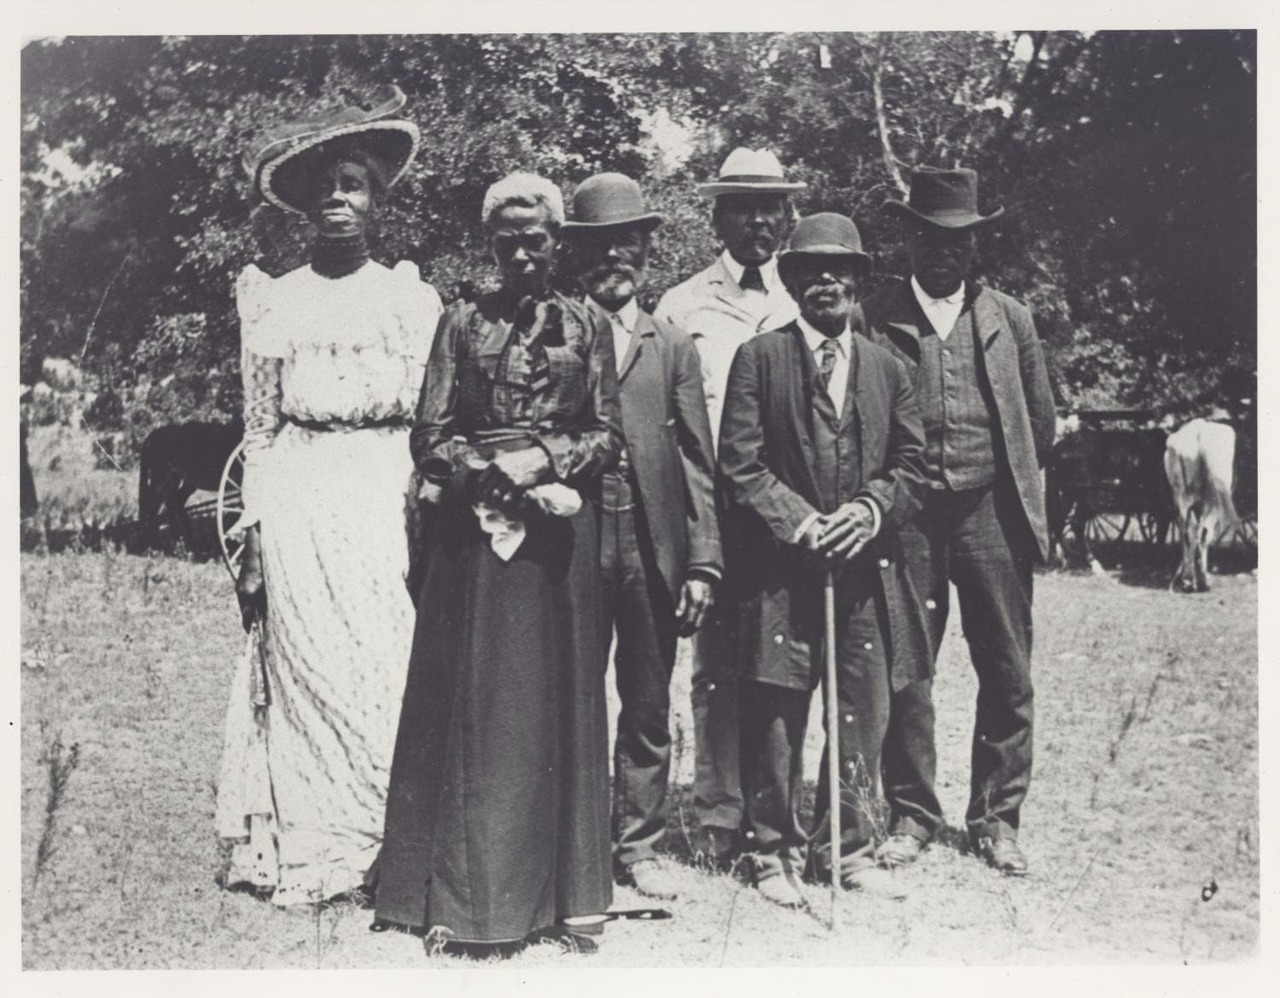 422eef1569f963 A Group Celebrating Juneteenth in Texas, 1900 – History